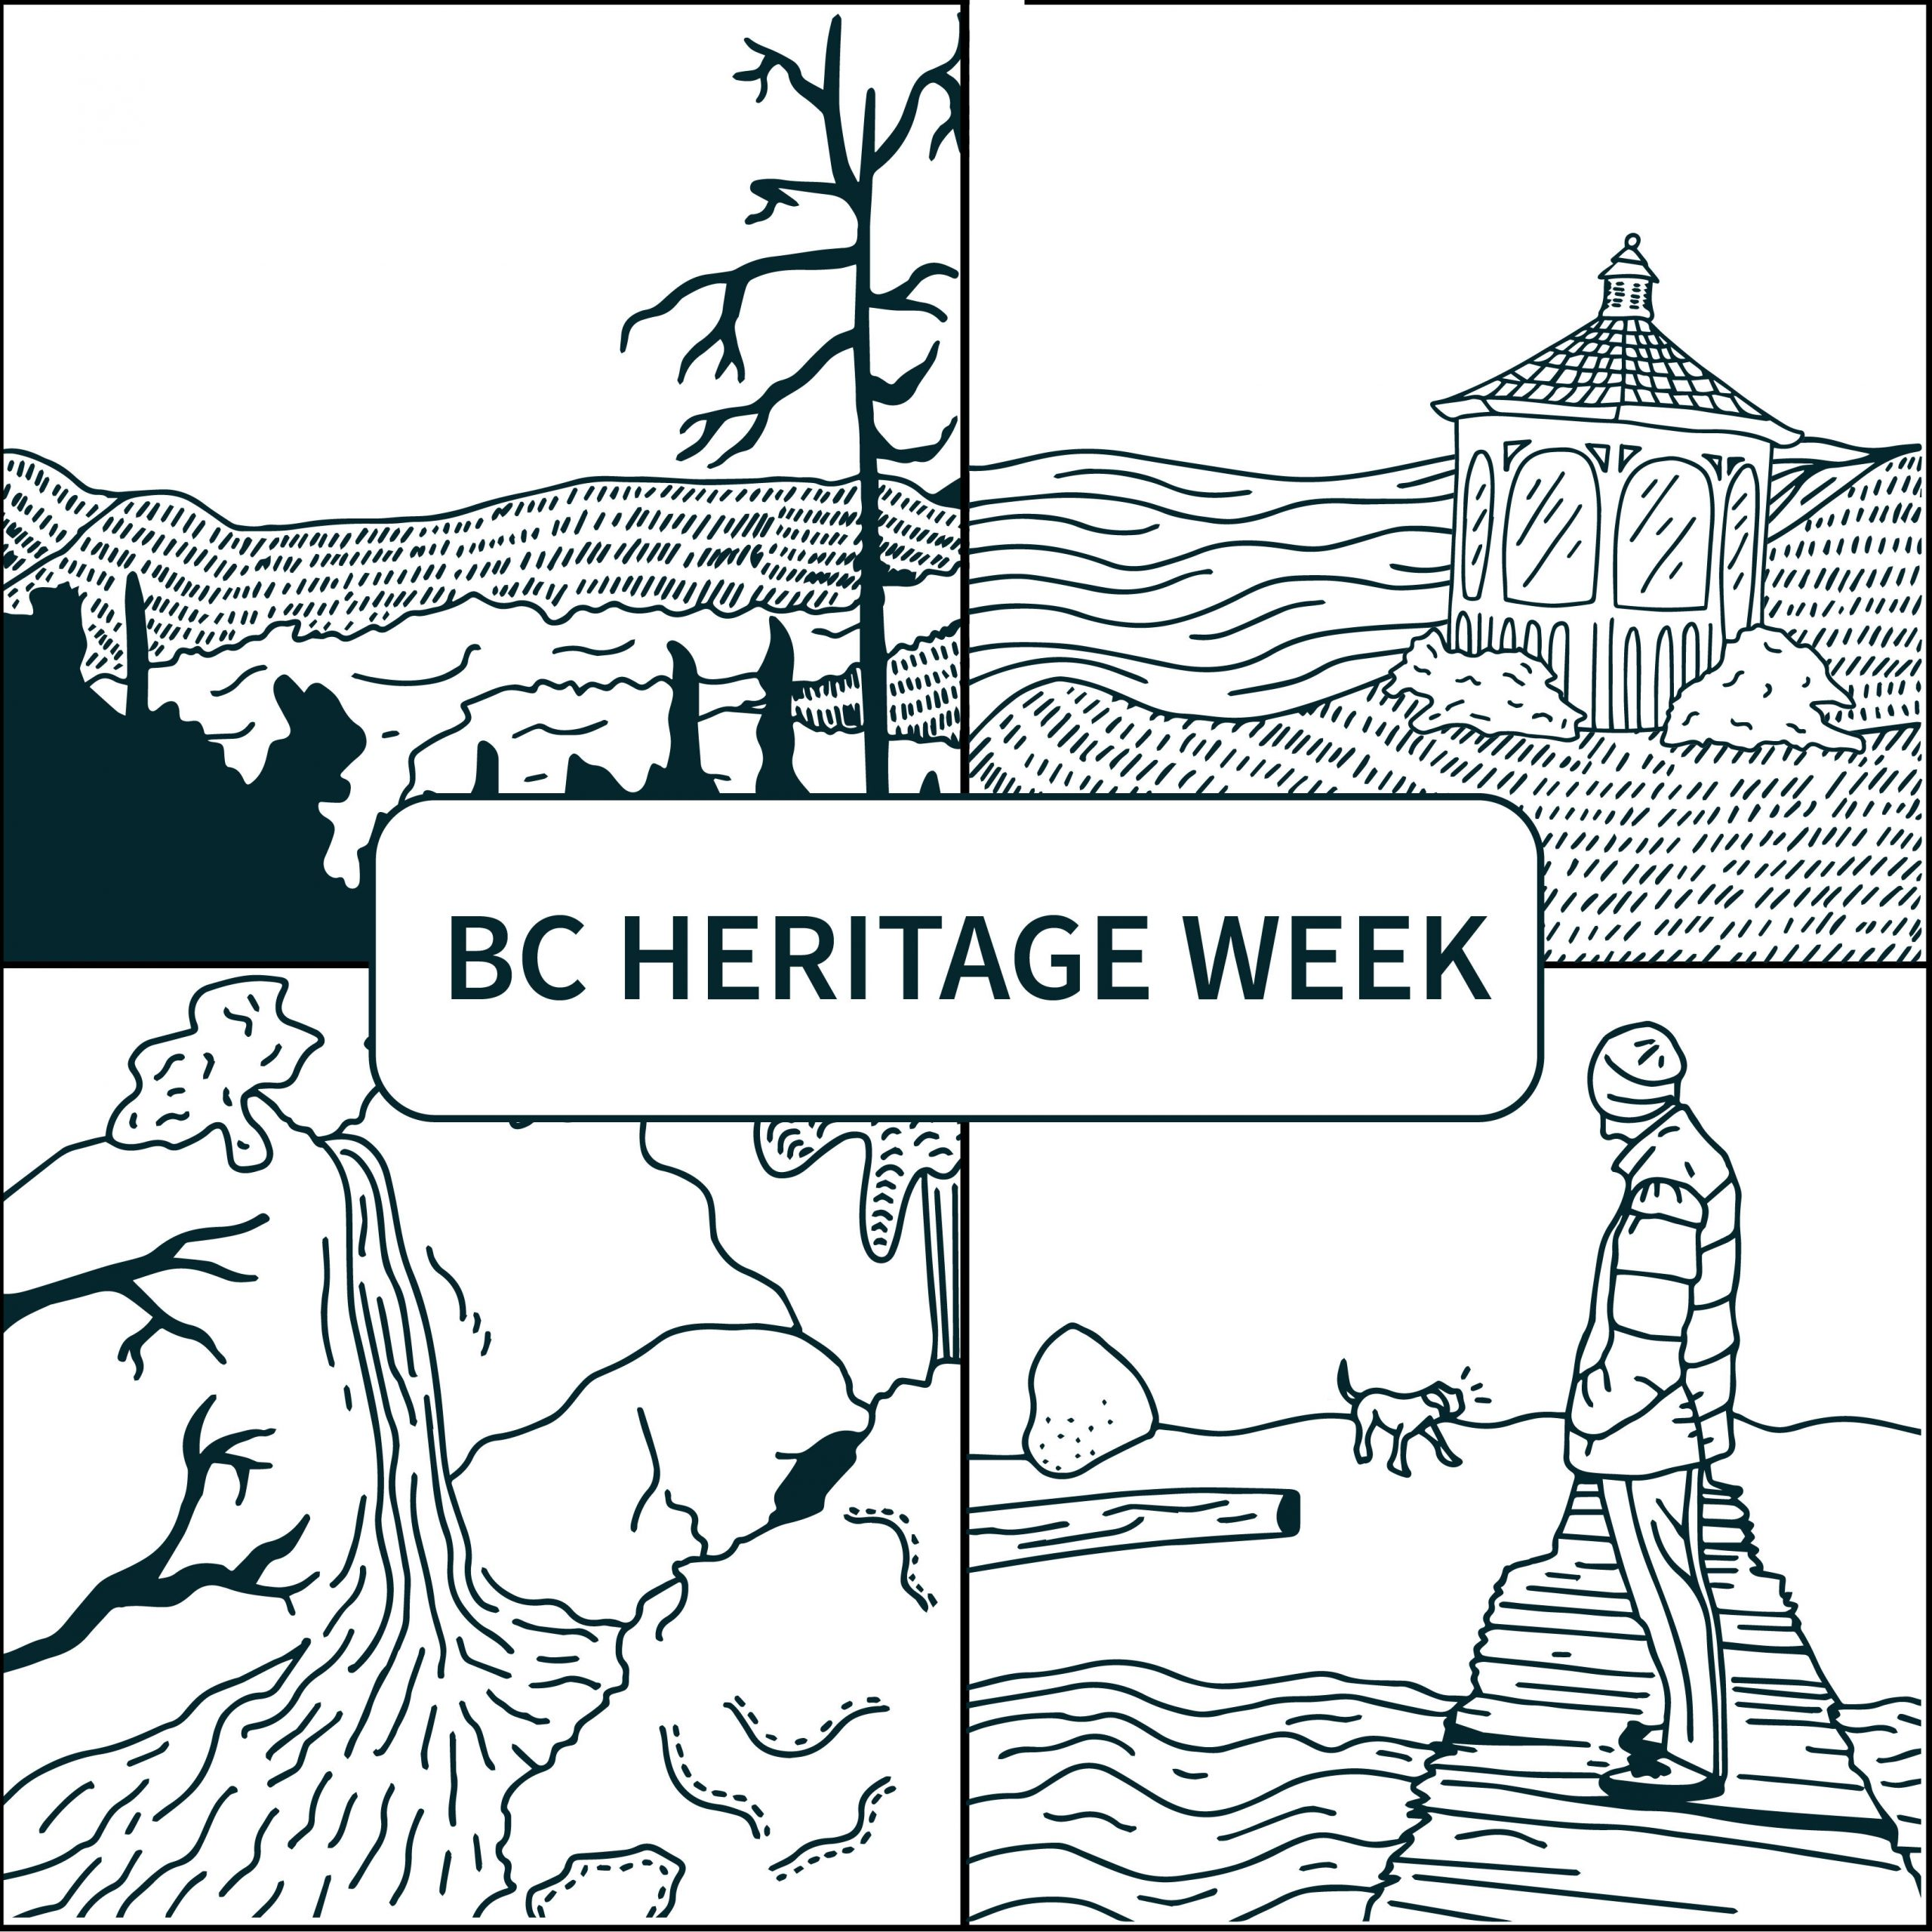 4 illustrated landscapes: hills and trees; a person watches a dog; a gazebo in a field, a waterfall down a mountain.